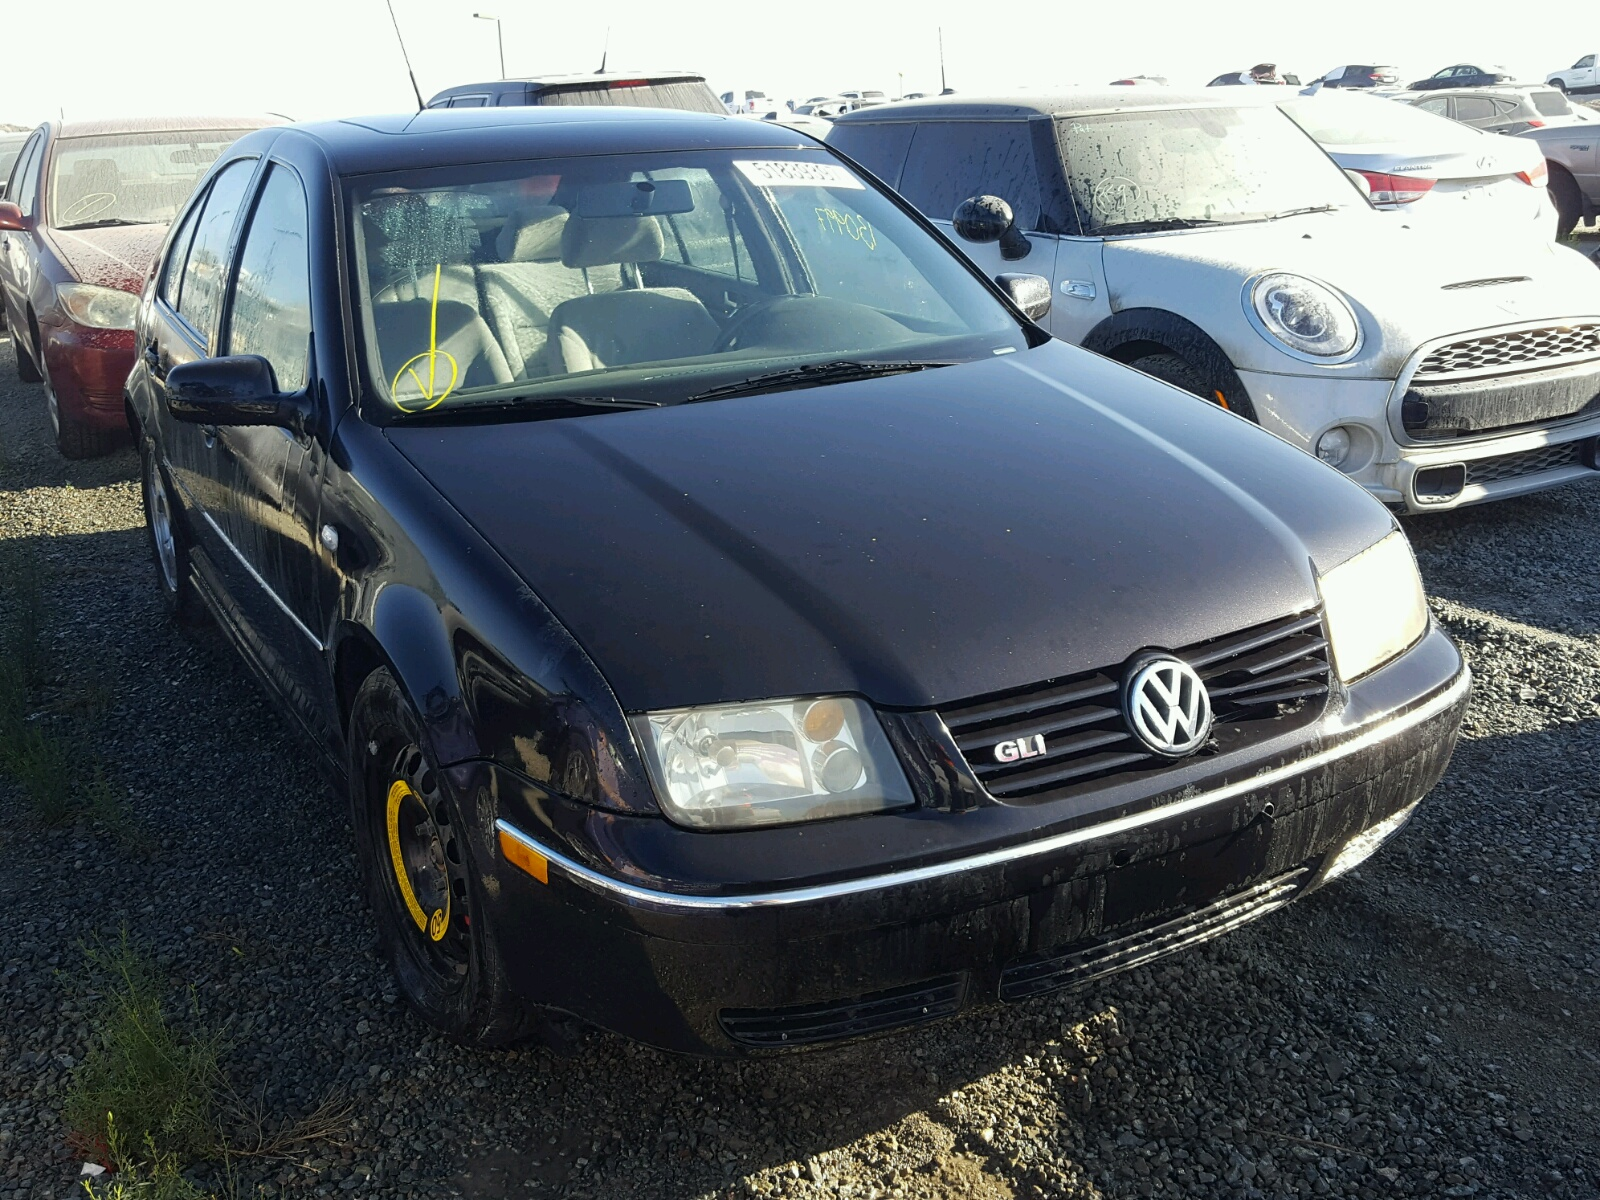 sale copart view ca in carfinder auto auctions salvage san left diego gray certificate limi on online lot jetta volkswagen en